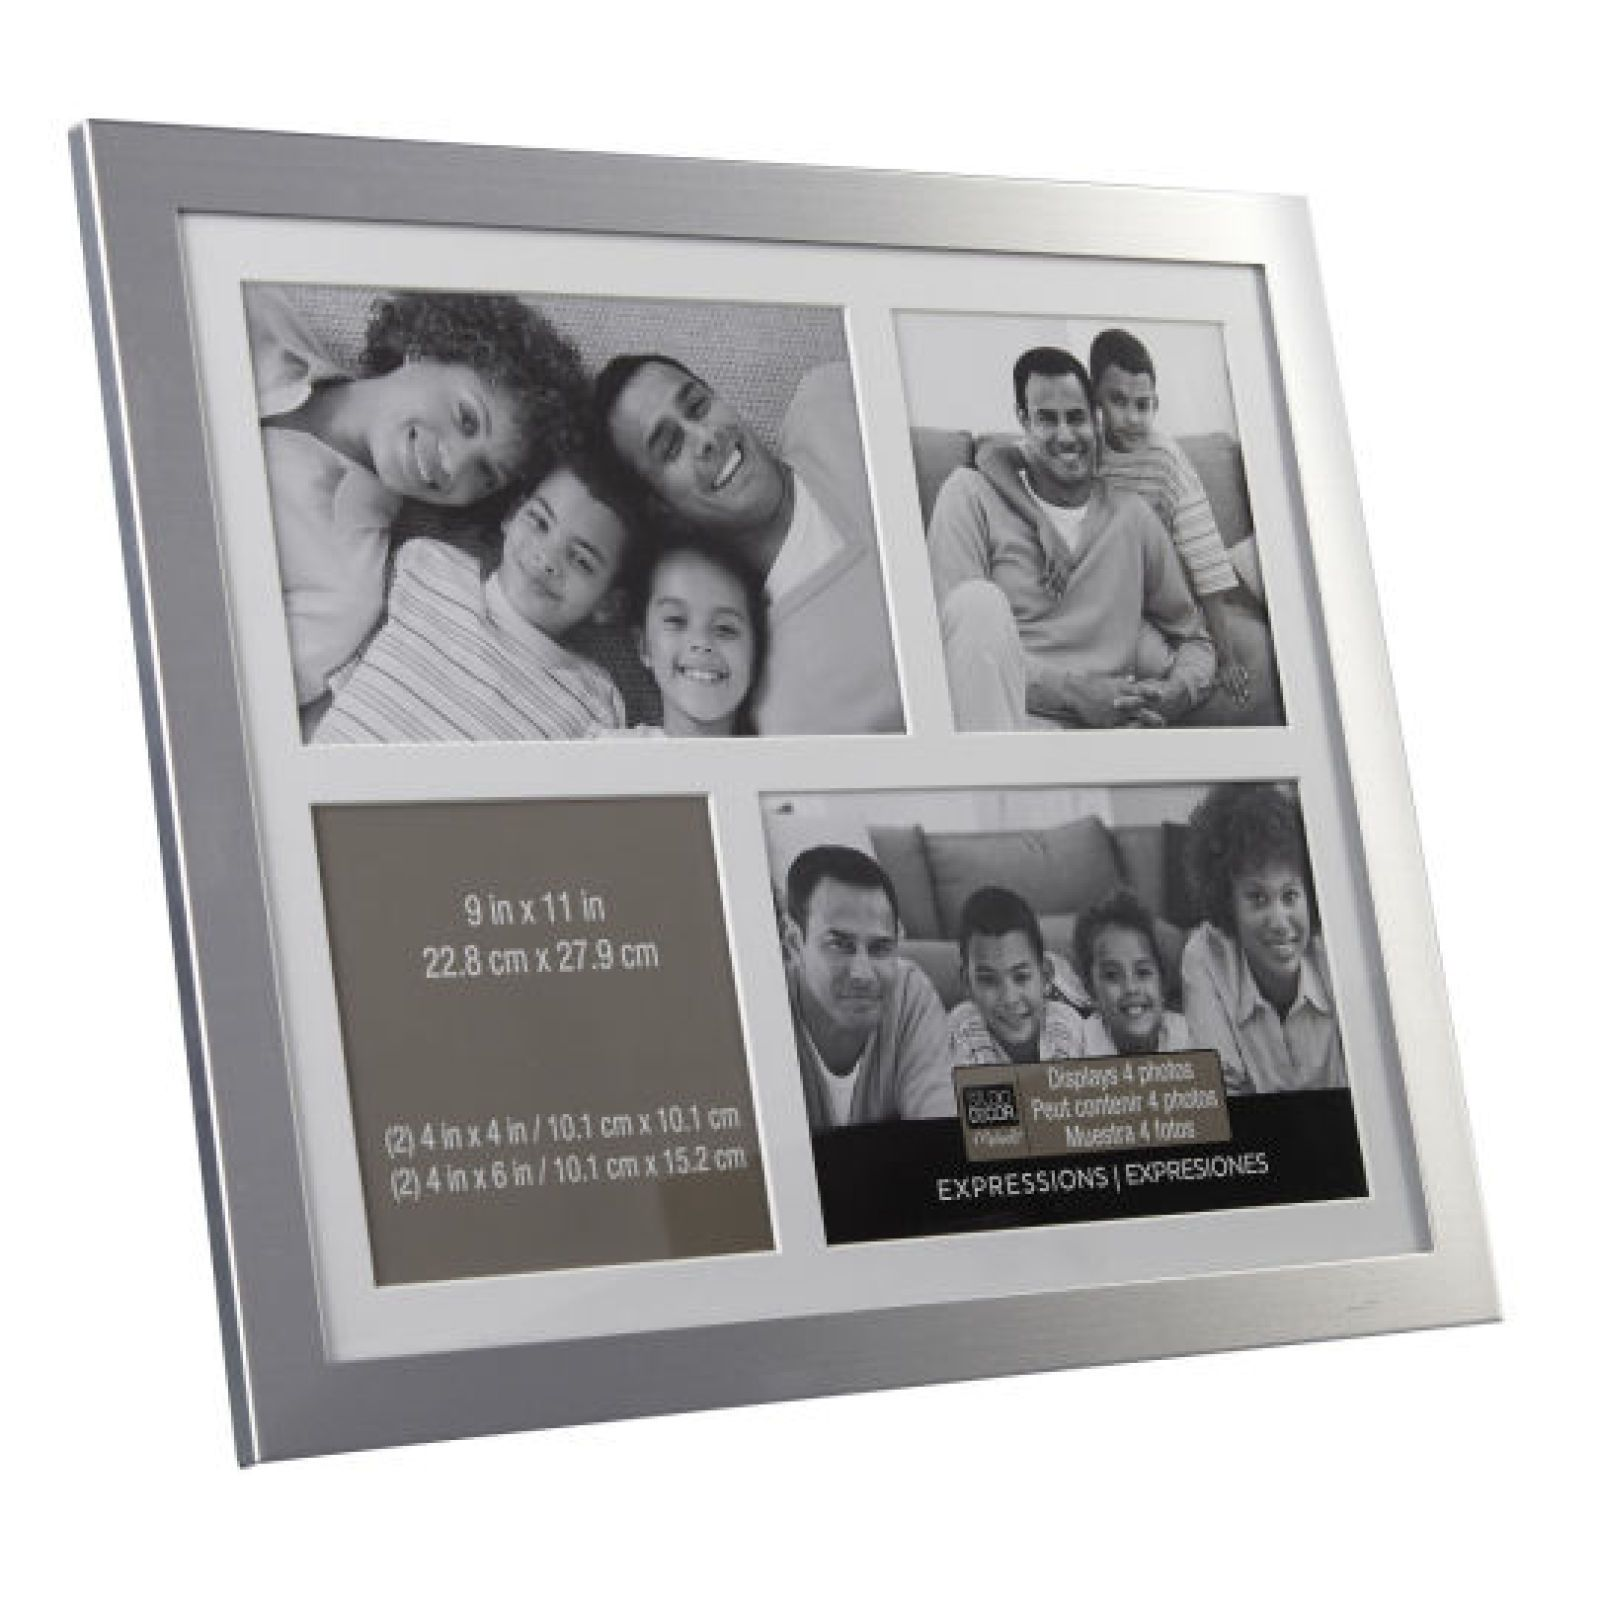 4 Opening Silver Collage Frame Expressions By Studio Decor Collage Frames Studio Decor Collage Picture Frames